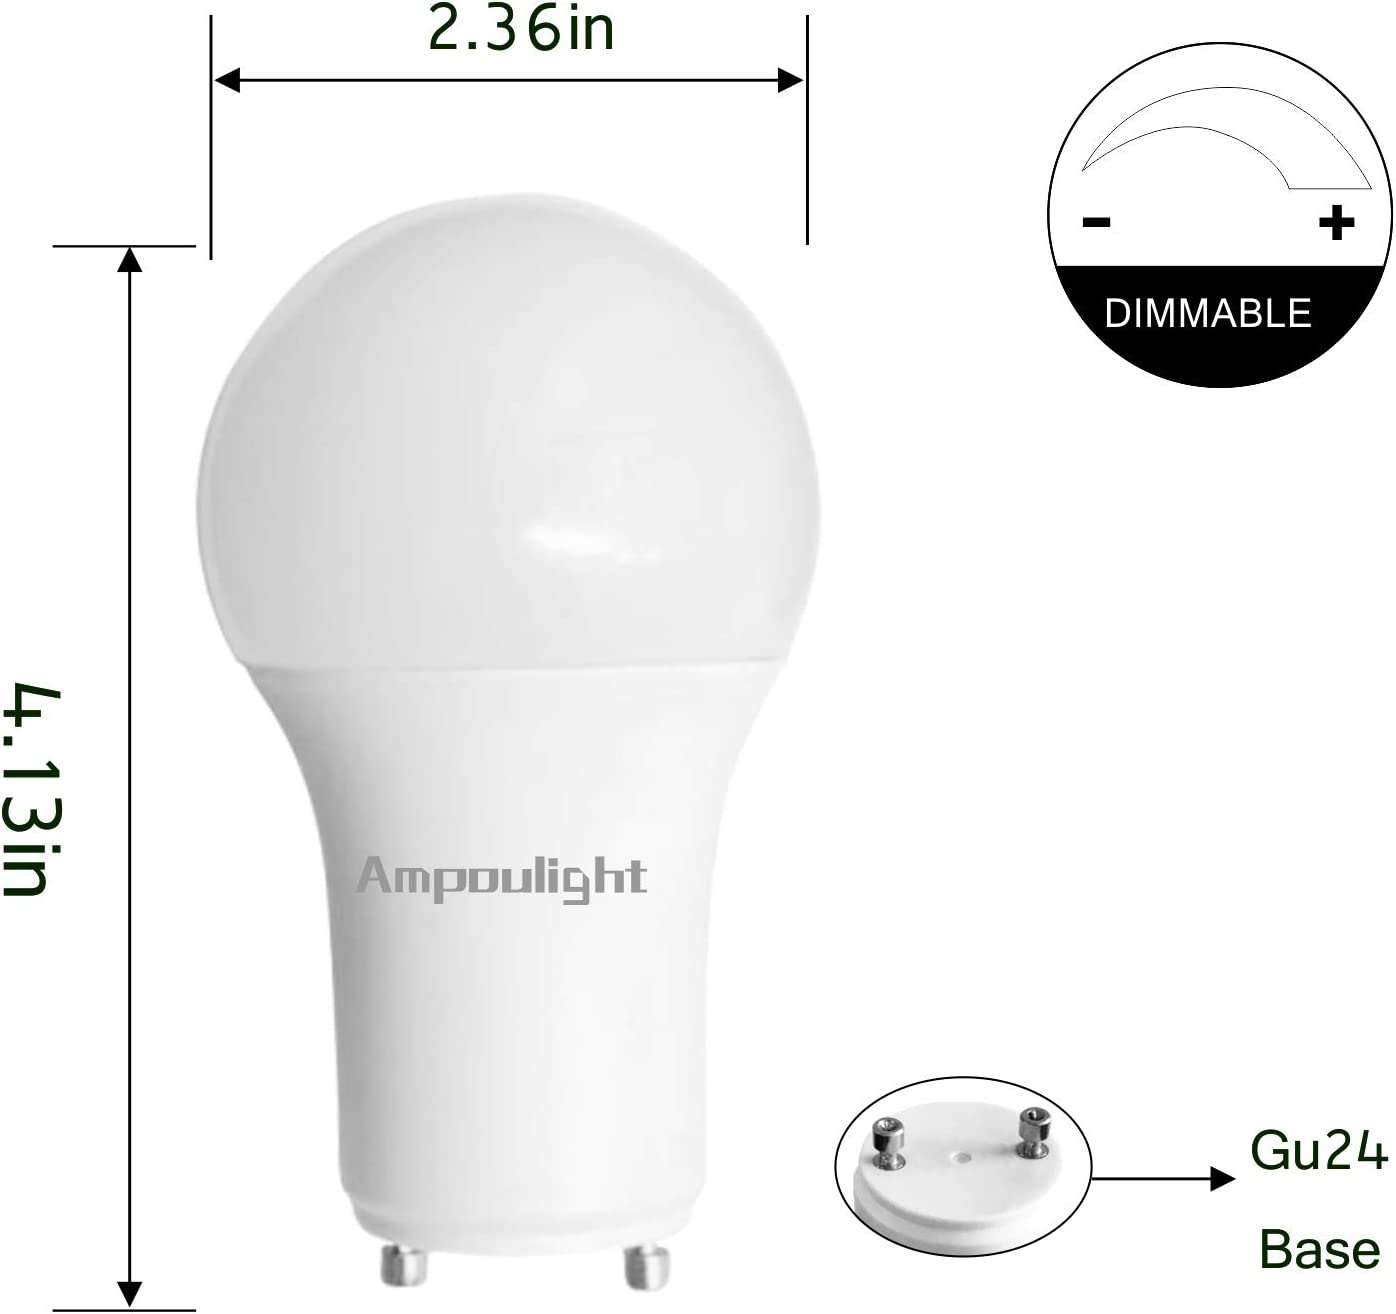 4 Pack 60W Equivalent 810LM 9W Dimmable 3000K Daylight LED Light Bulb 270 Degree Beam Angle Ampoulight LED A19 Bulb with GU24 Base